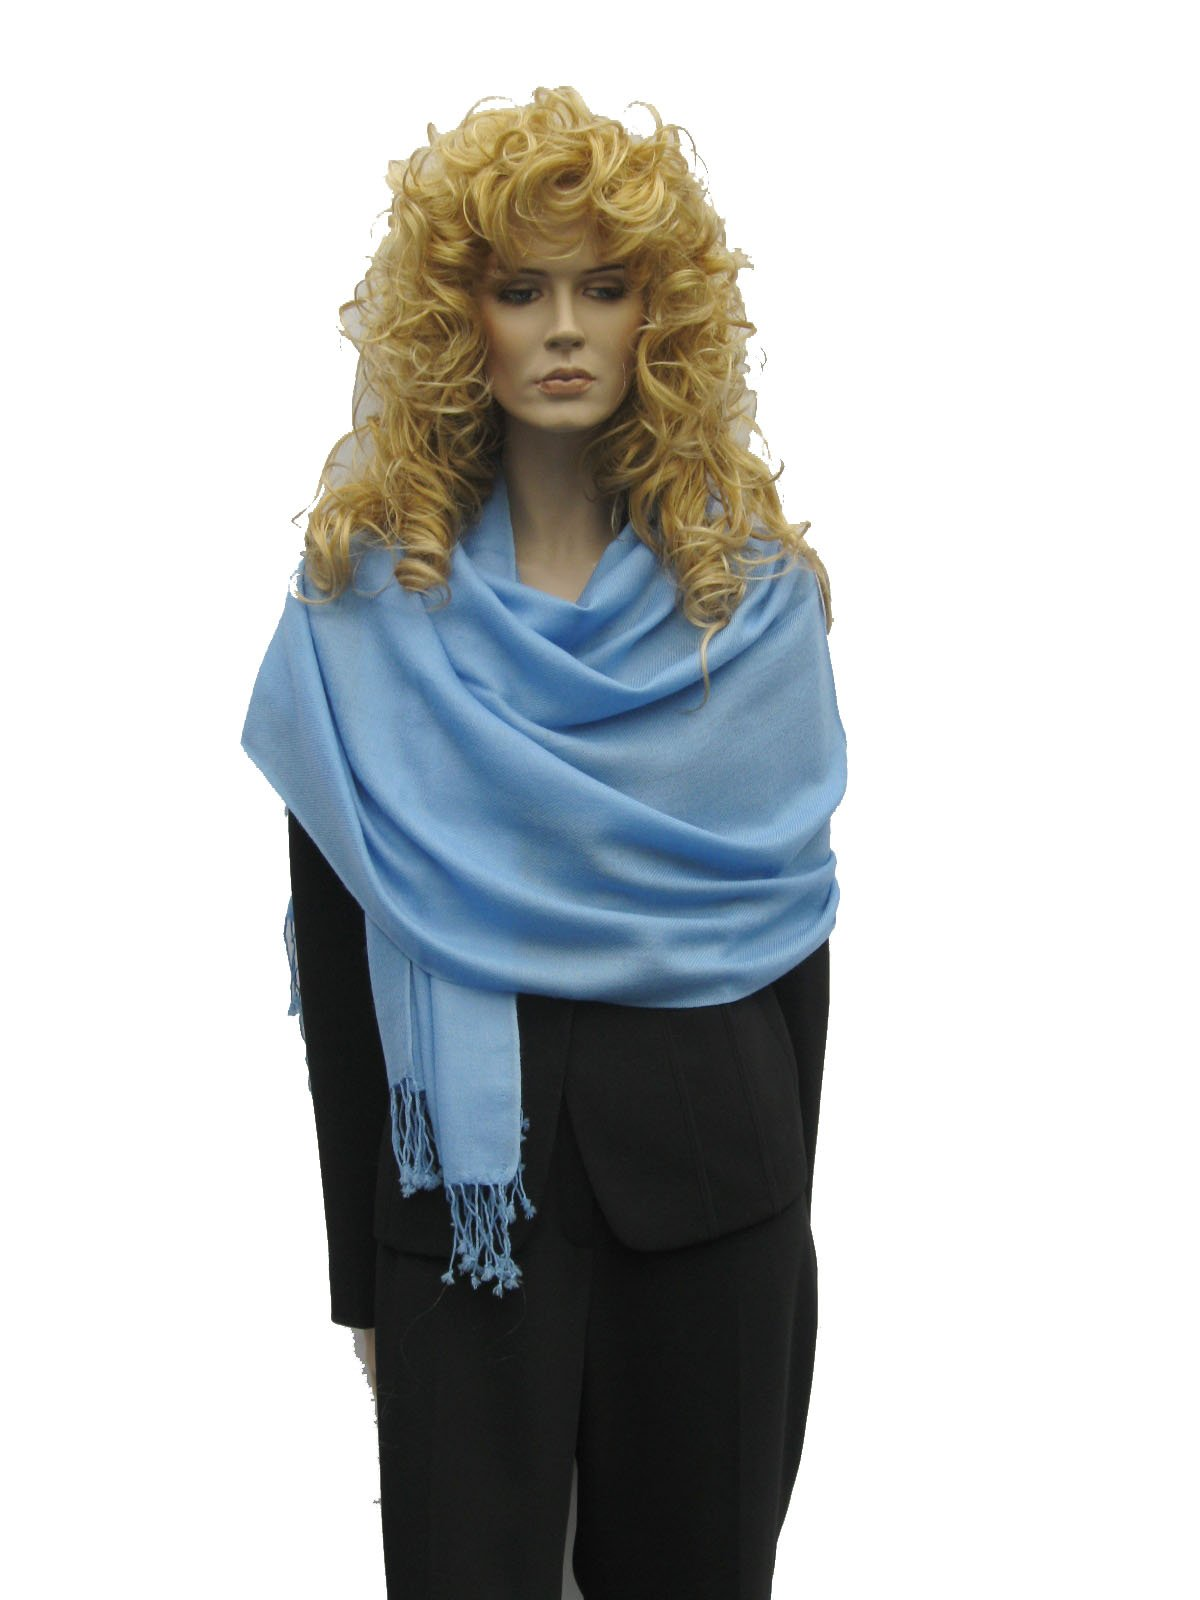 Pashmina Shawl (Pure Pashmina 2 Ply) from Cashmere Pashmina Group (SEA BLUE)